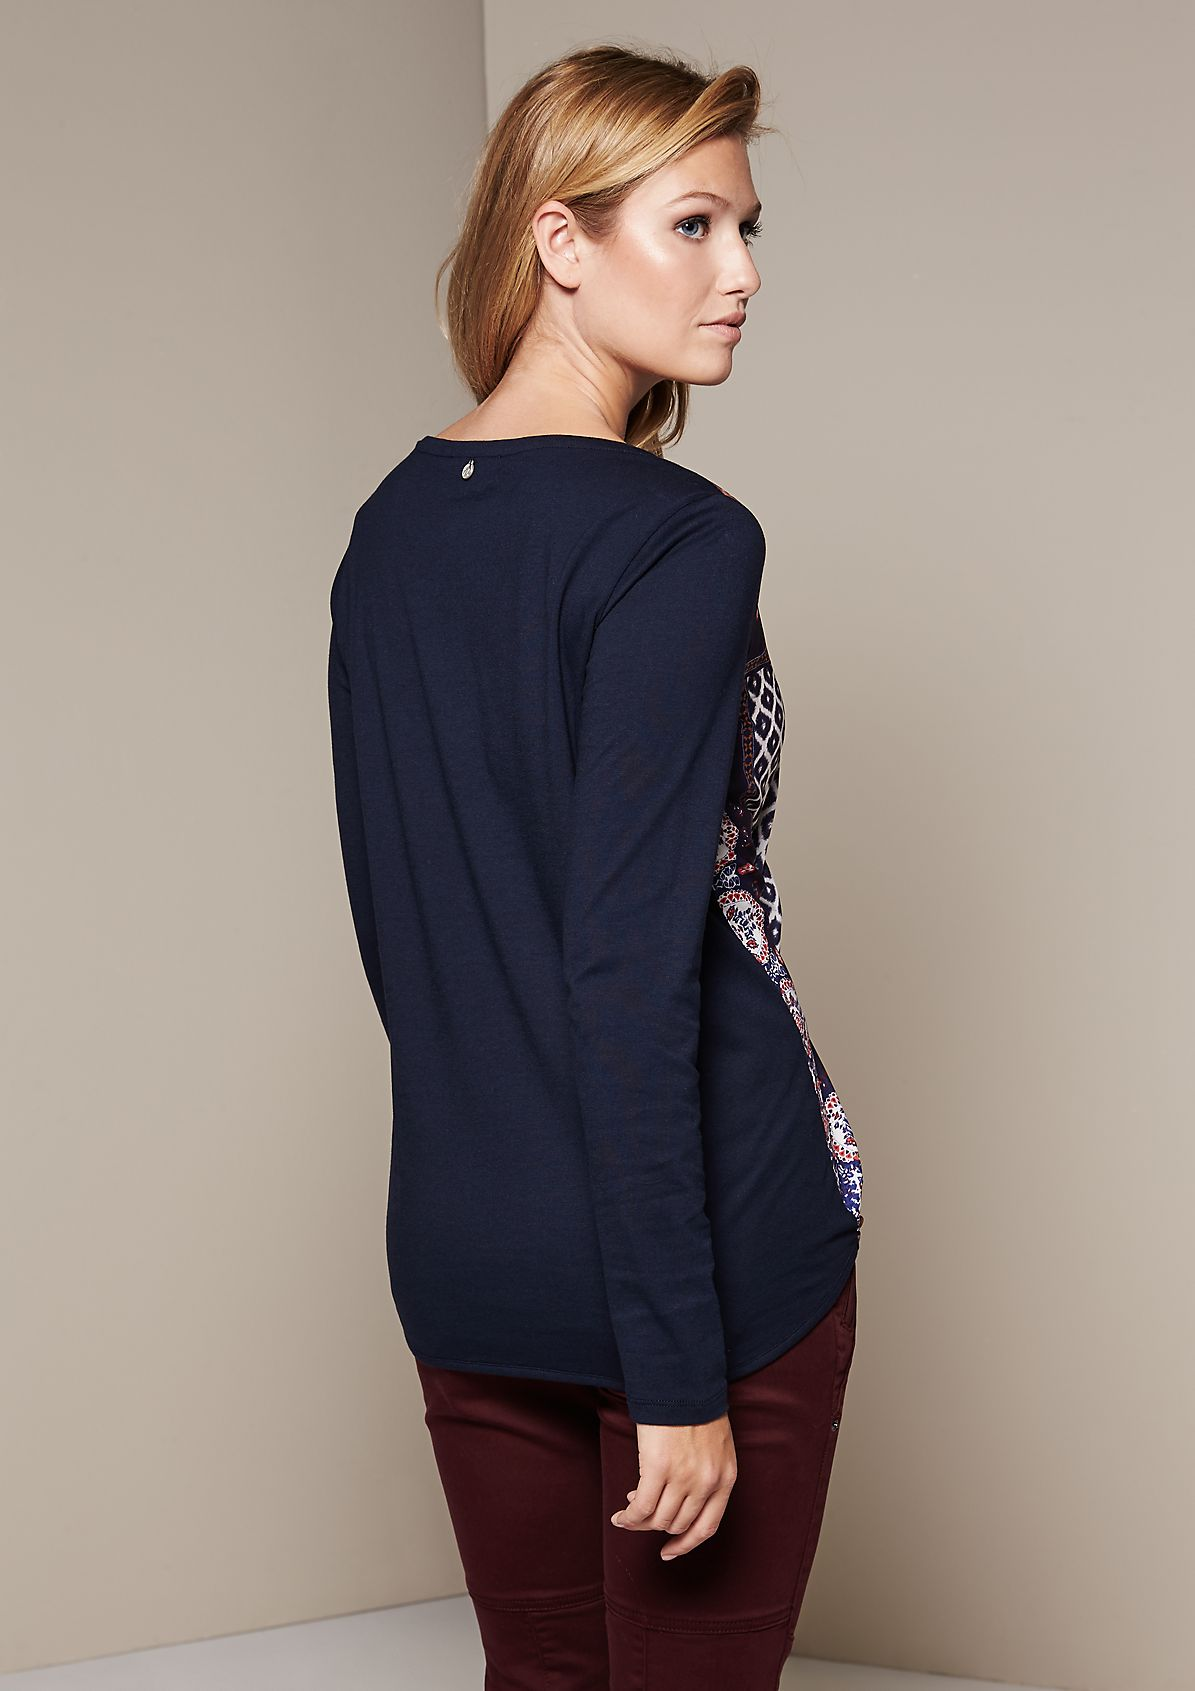 Beautiful long sleeve satin top with an elaborately designed printed pattern from s.Oliver